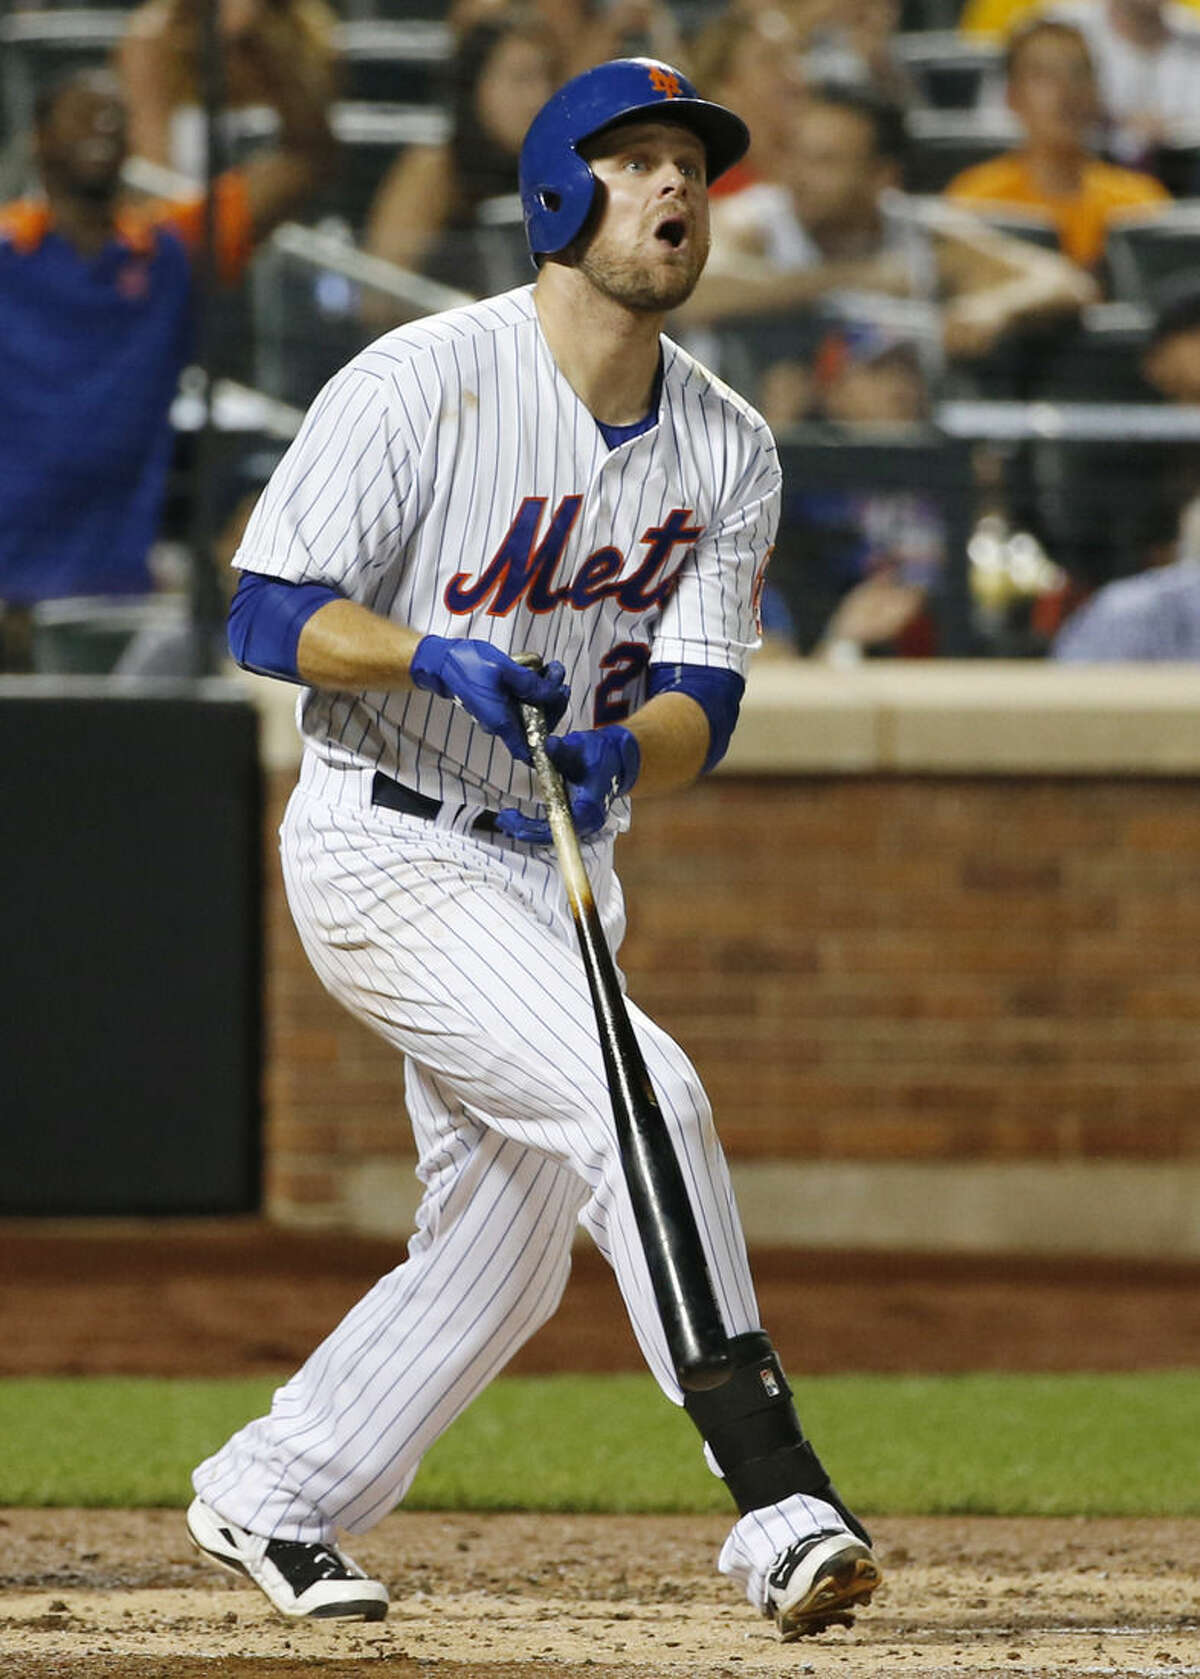 New York Mets Lucas Duda reacts to hitting a third-inning, two-run home run off Washington Nationals starting pitcher Jordan Zimmermann during a baseball game in New York on Sunday, Aug. 2 2015. Zimmerman allowed five runs in the inning, including a second, two-run home run to the Mets' Curtis Granderson. (AP Photo/Kathy Willens)